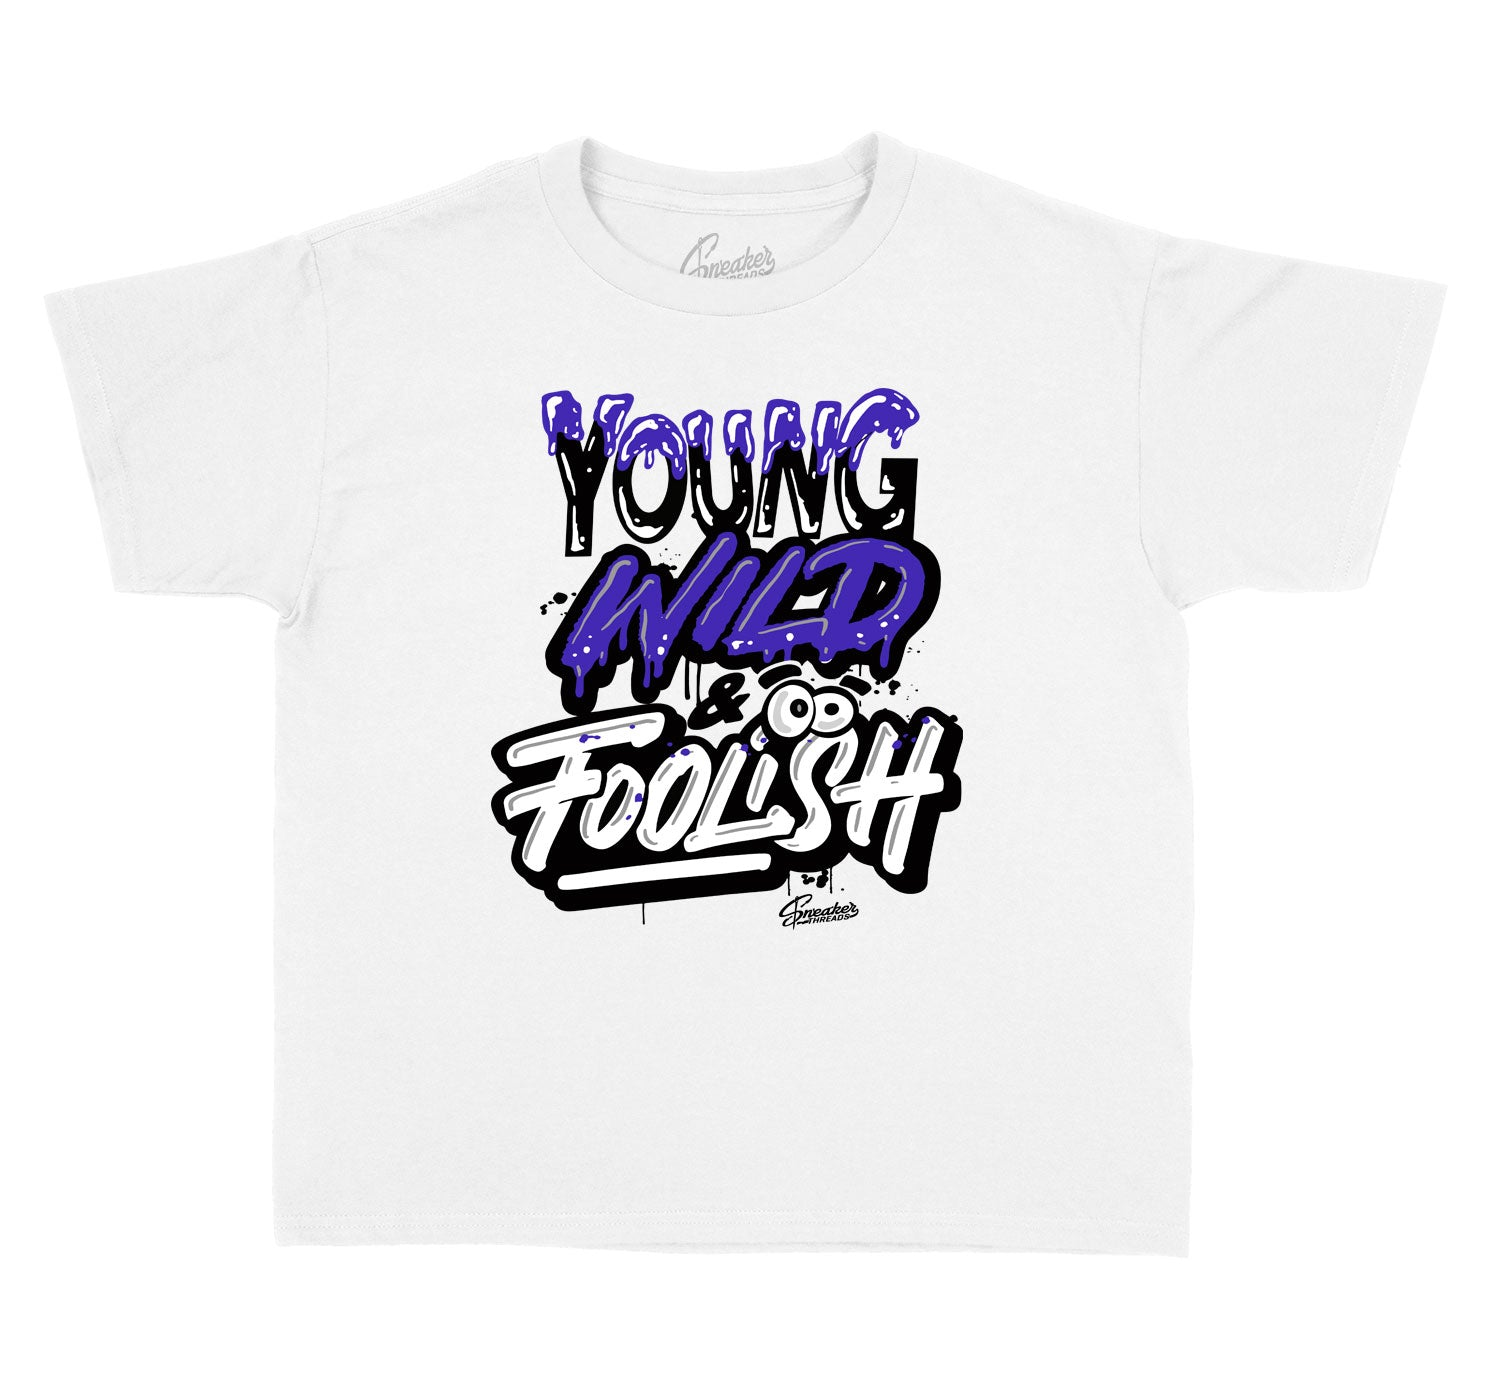 T shirt collection matches the sneaker Jordan 4 purple metallic sneaker collection